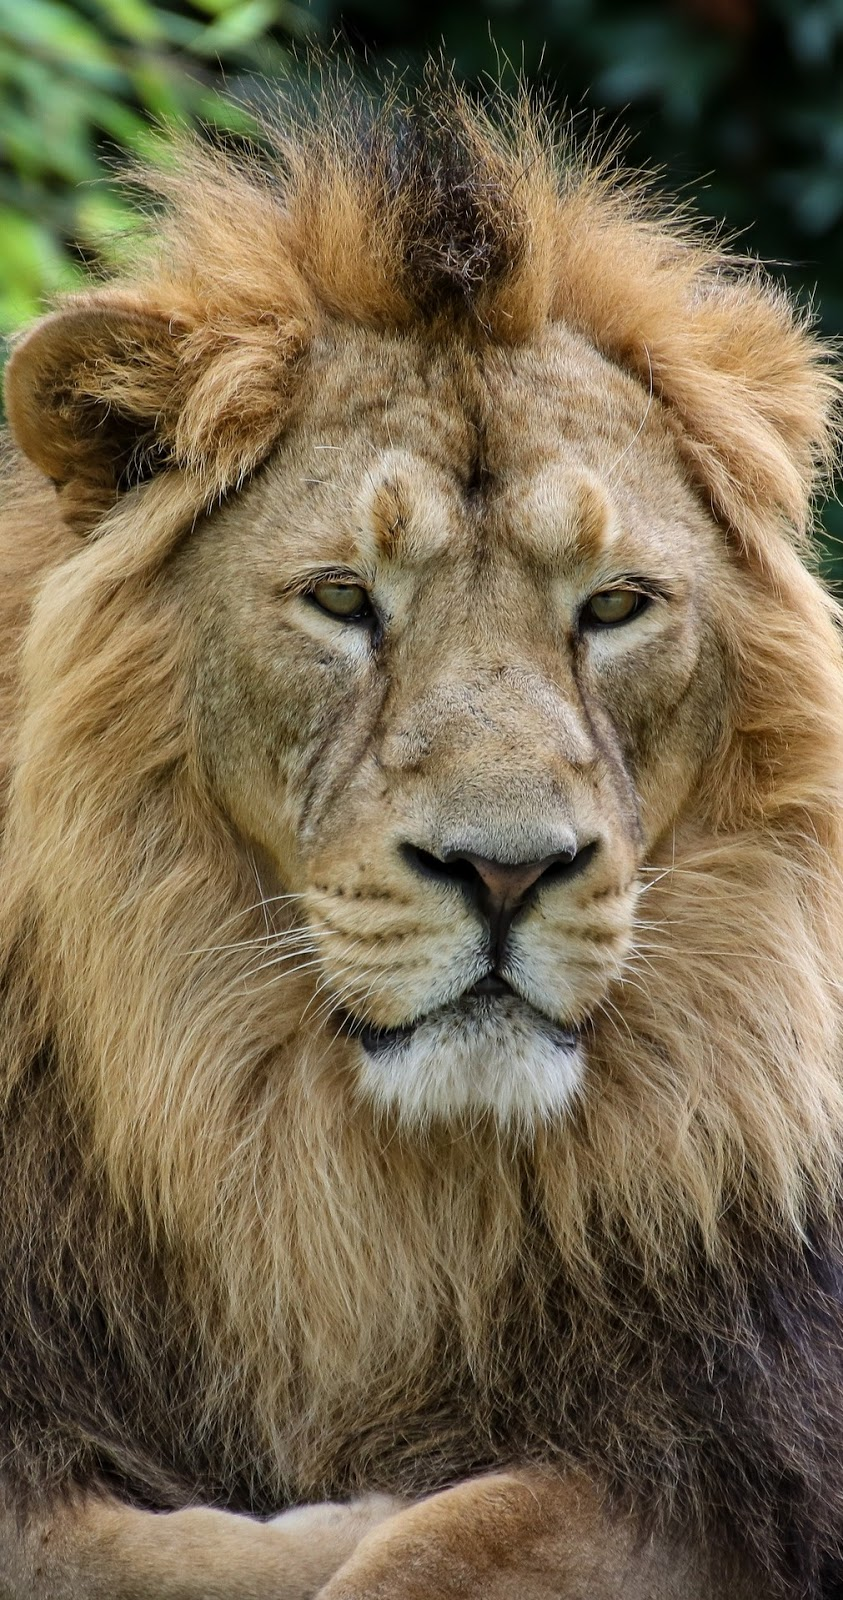 Majestic lion.